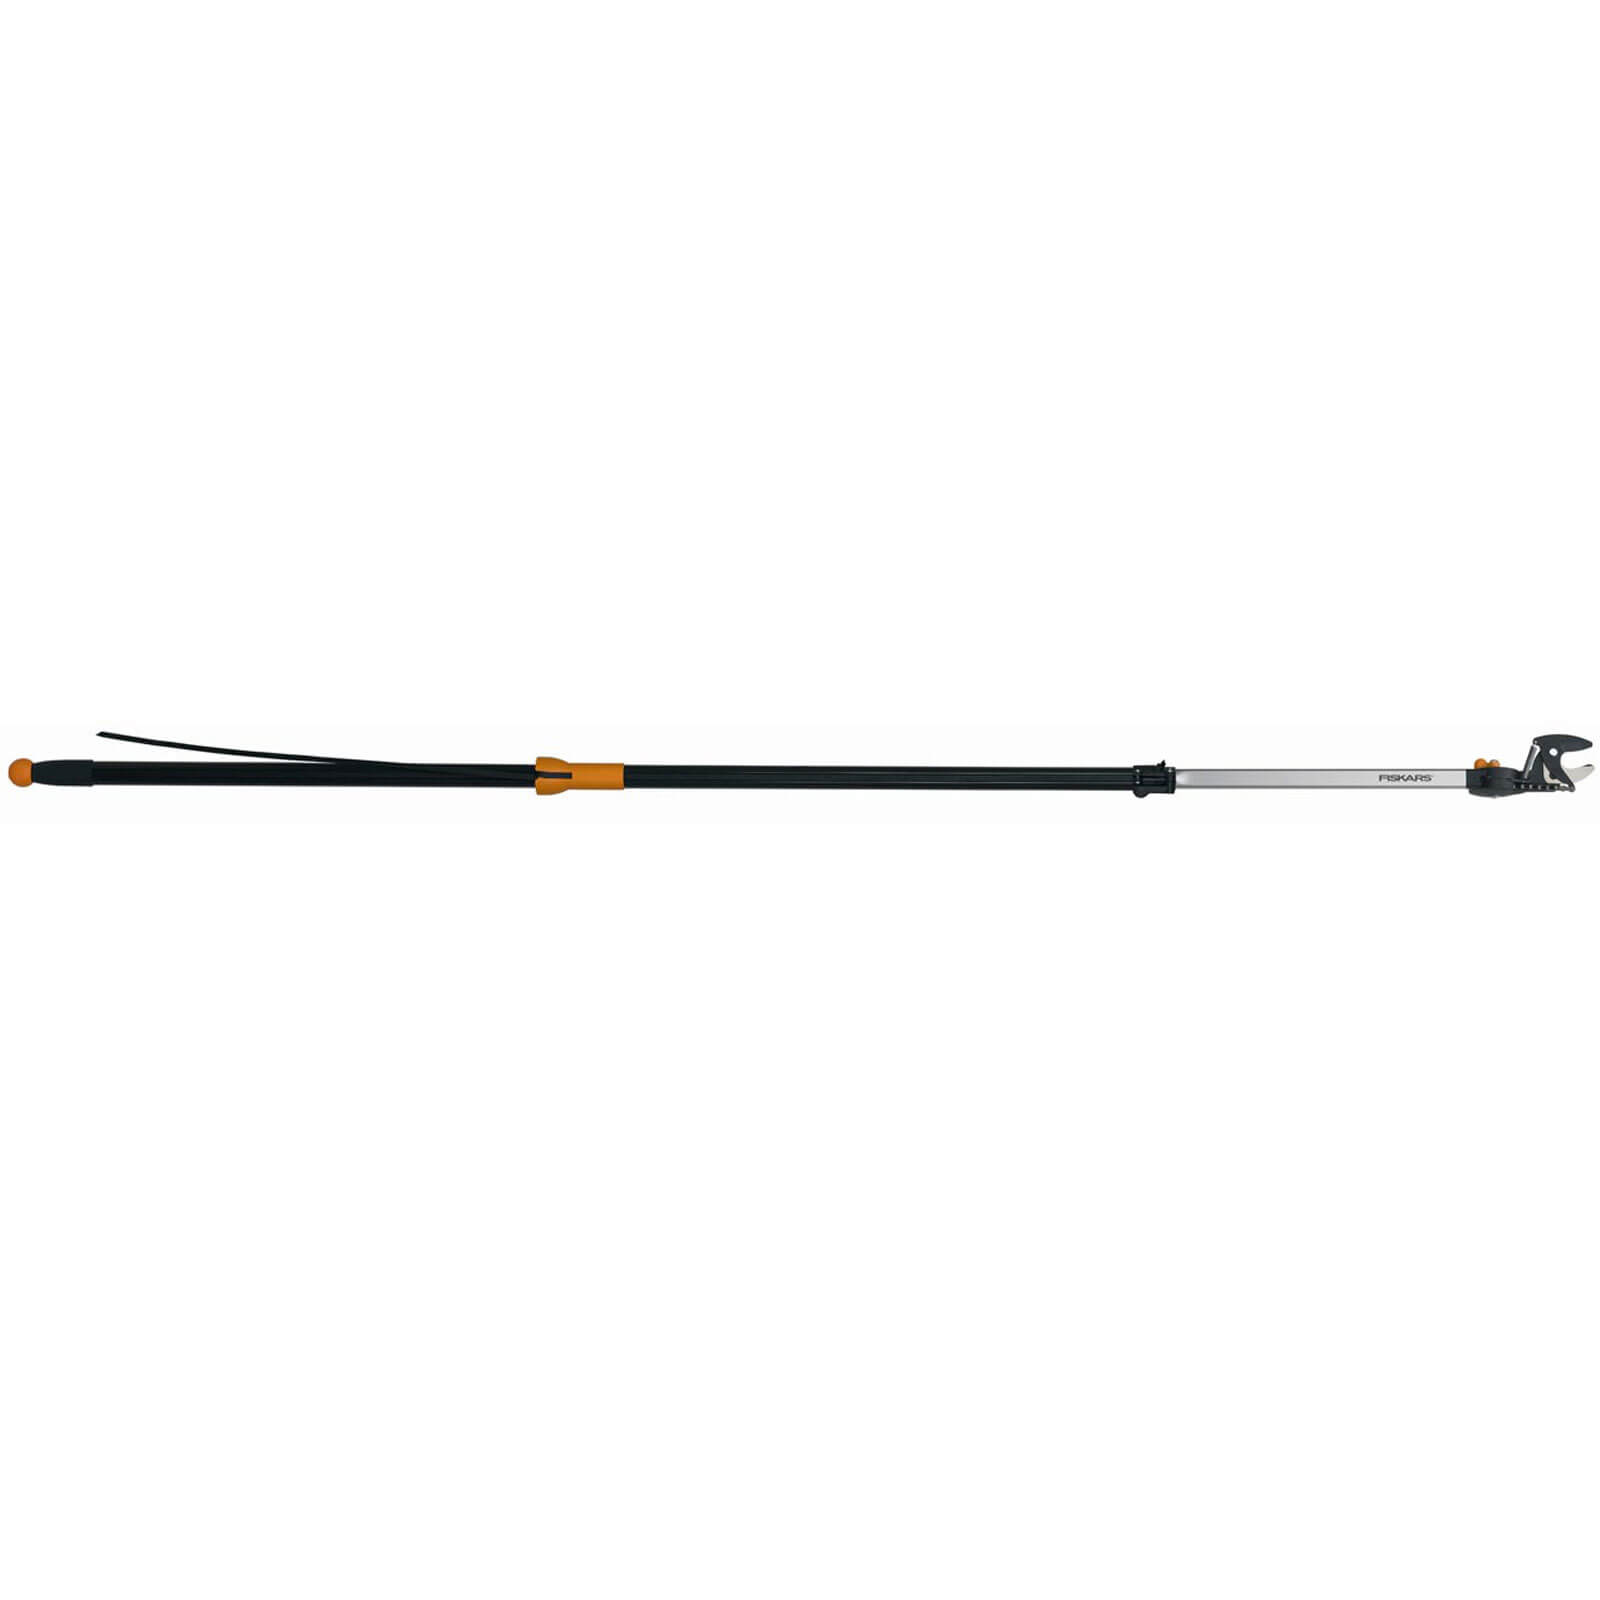 Fiskars Telescopic Universal Anvil Tree Pruner & Cutter 2.3 Metres Extends Max 3.4 Metres